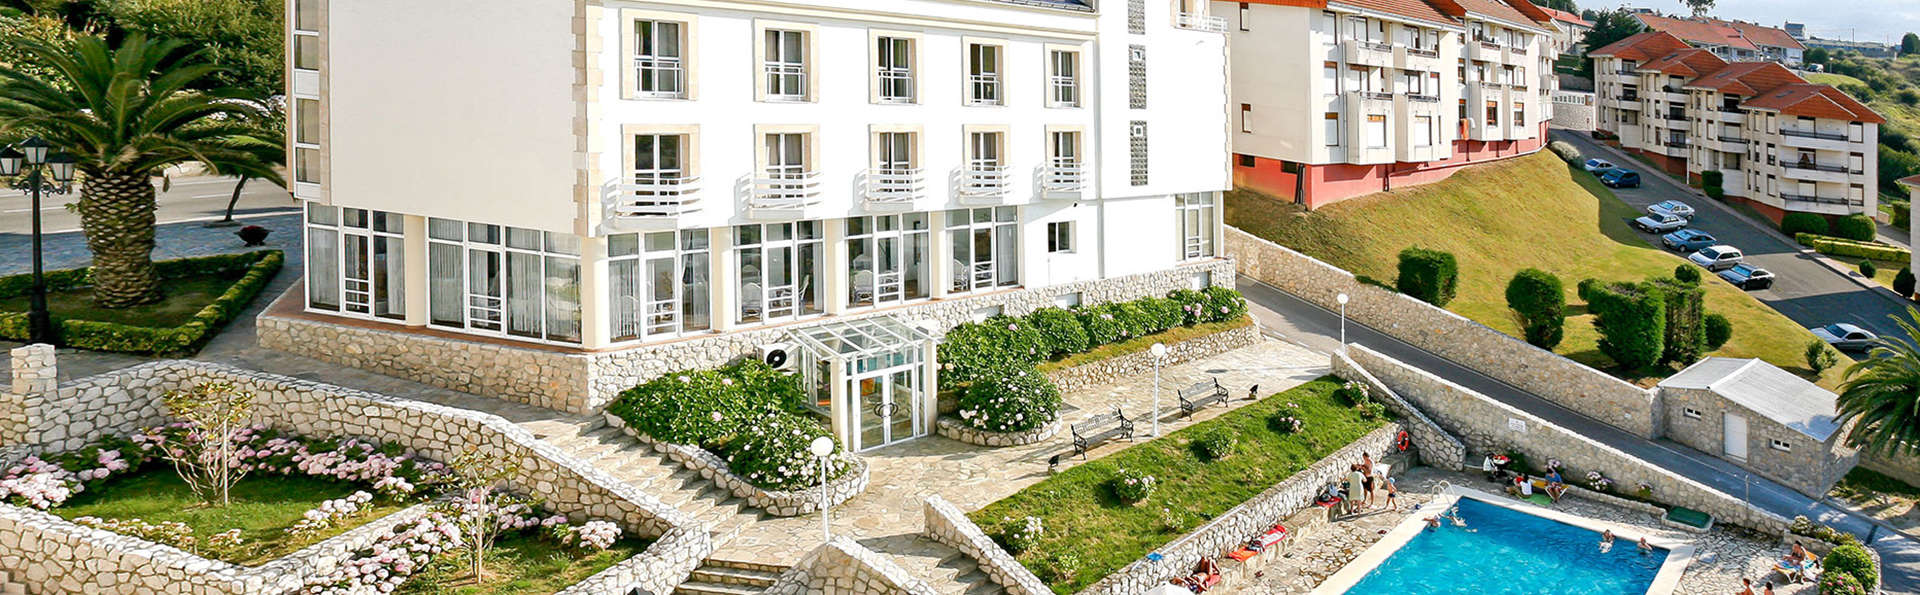 Hotel Suances - EDIT_facade2.jpg